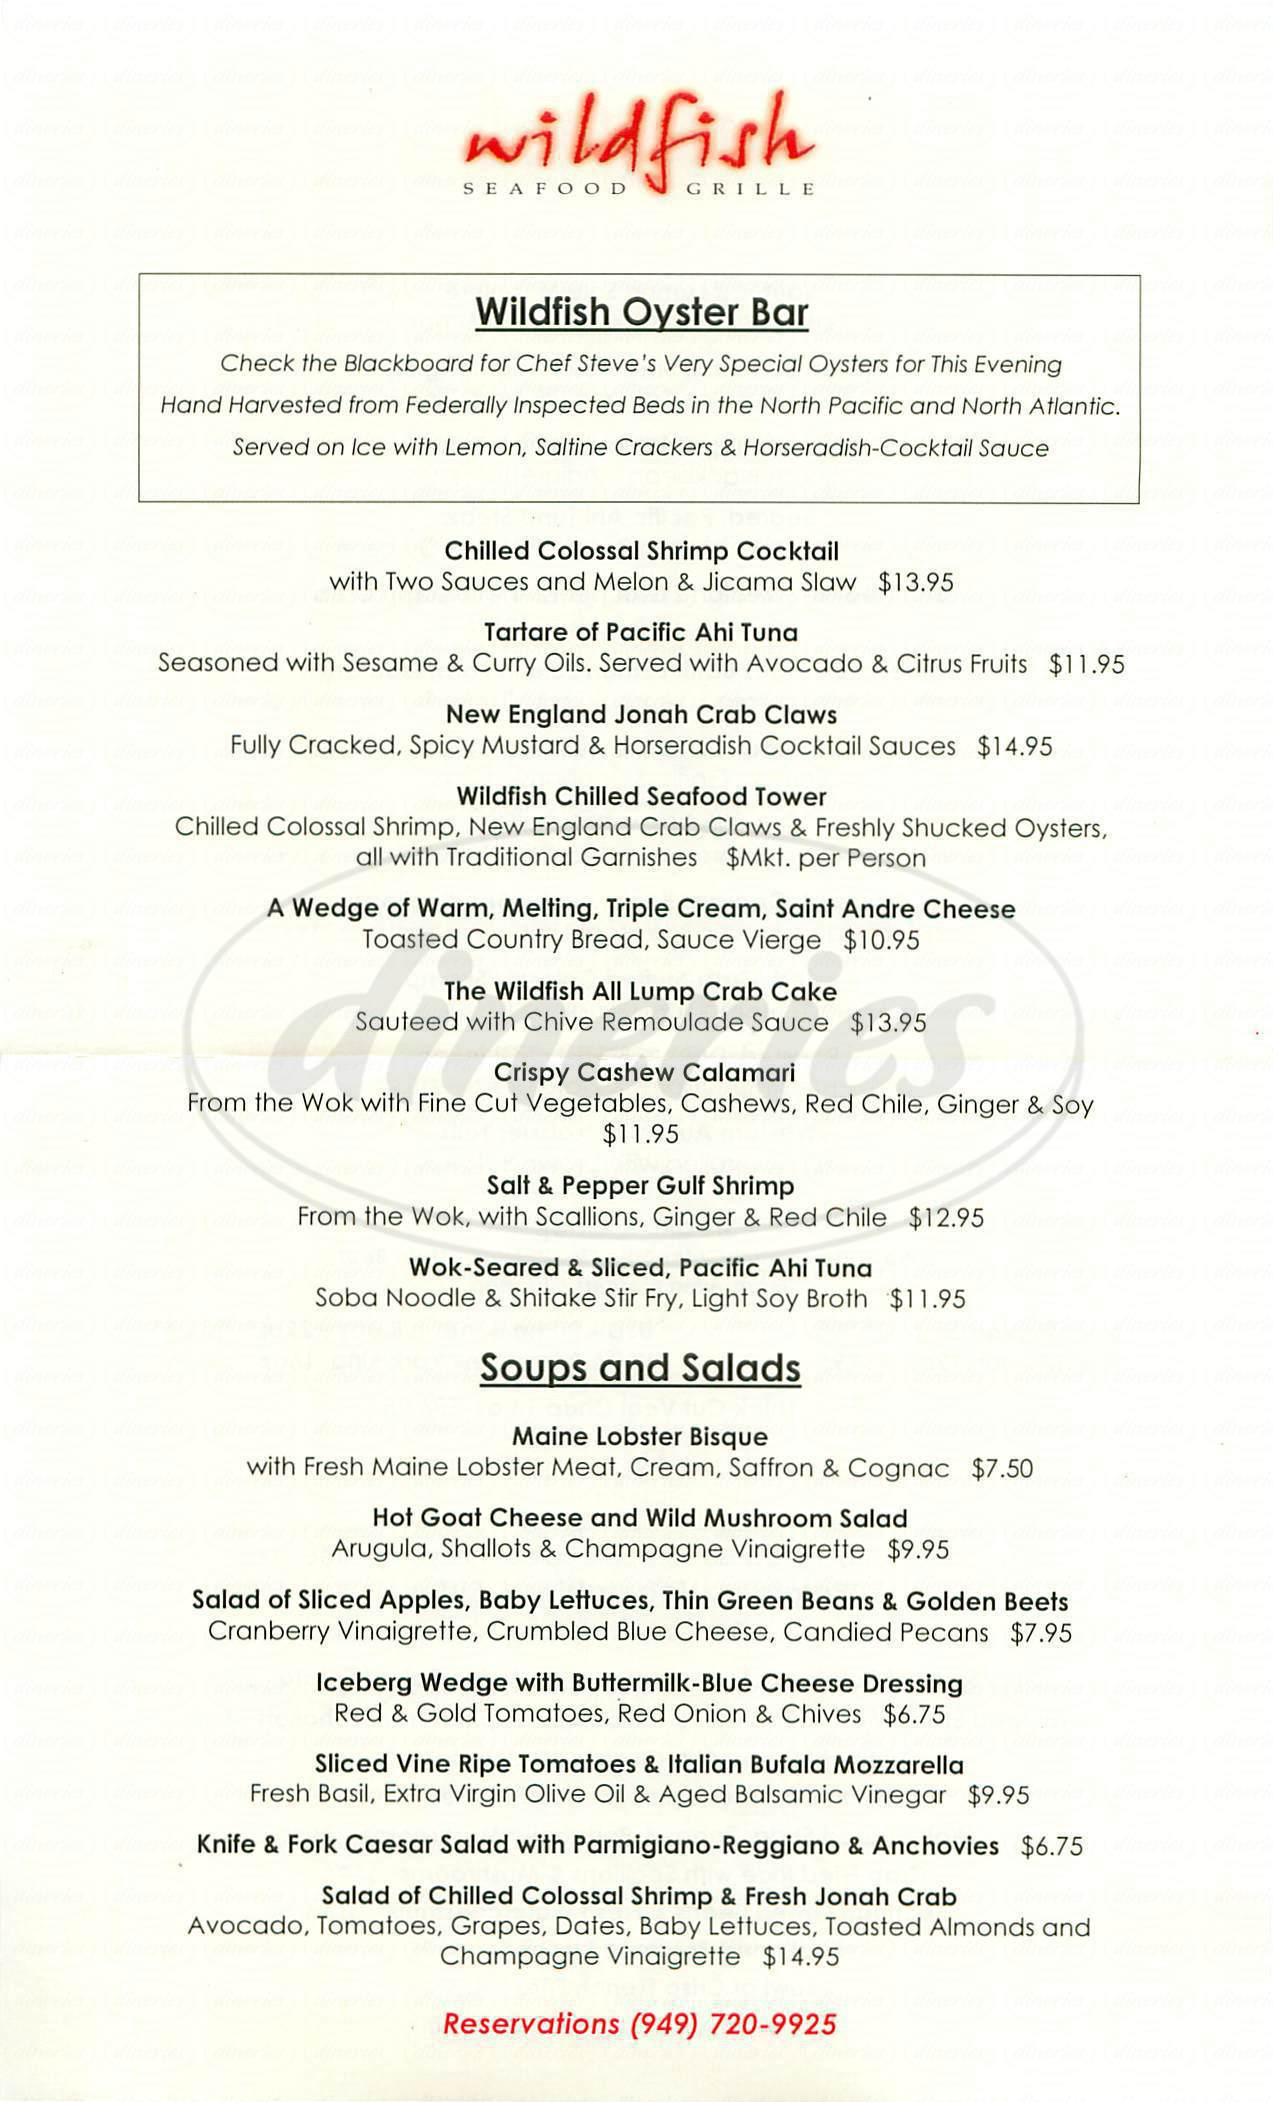 menu for Wildfish Sea Food Grille